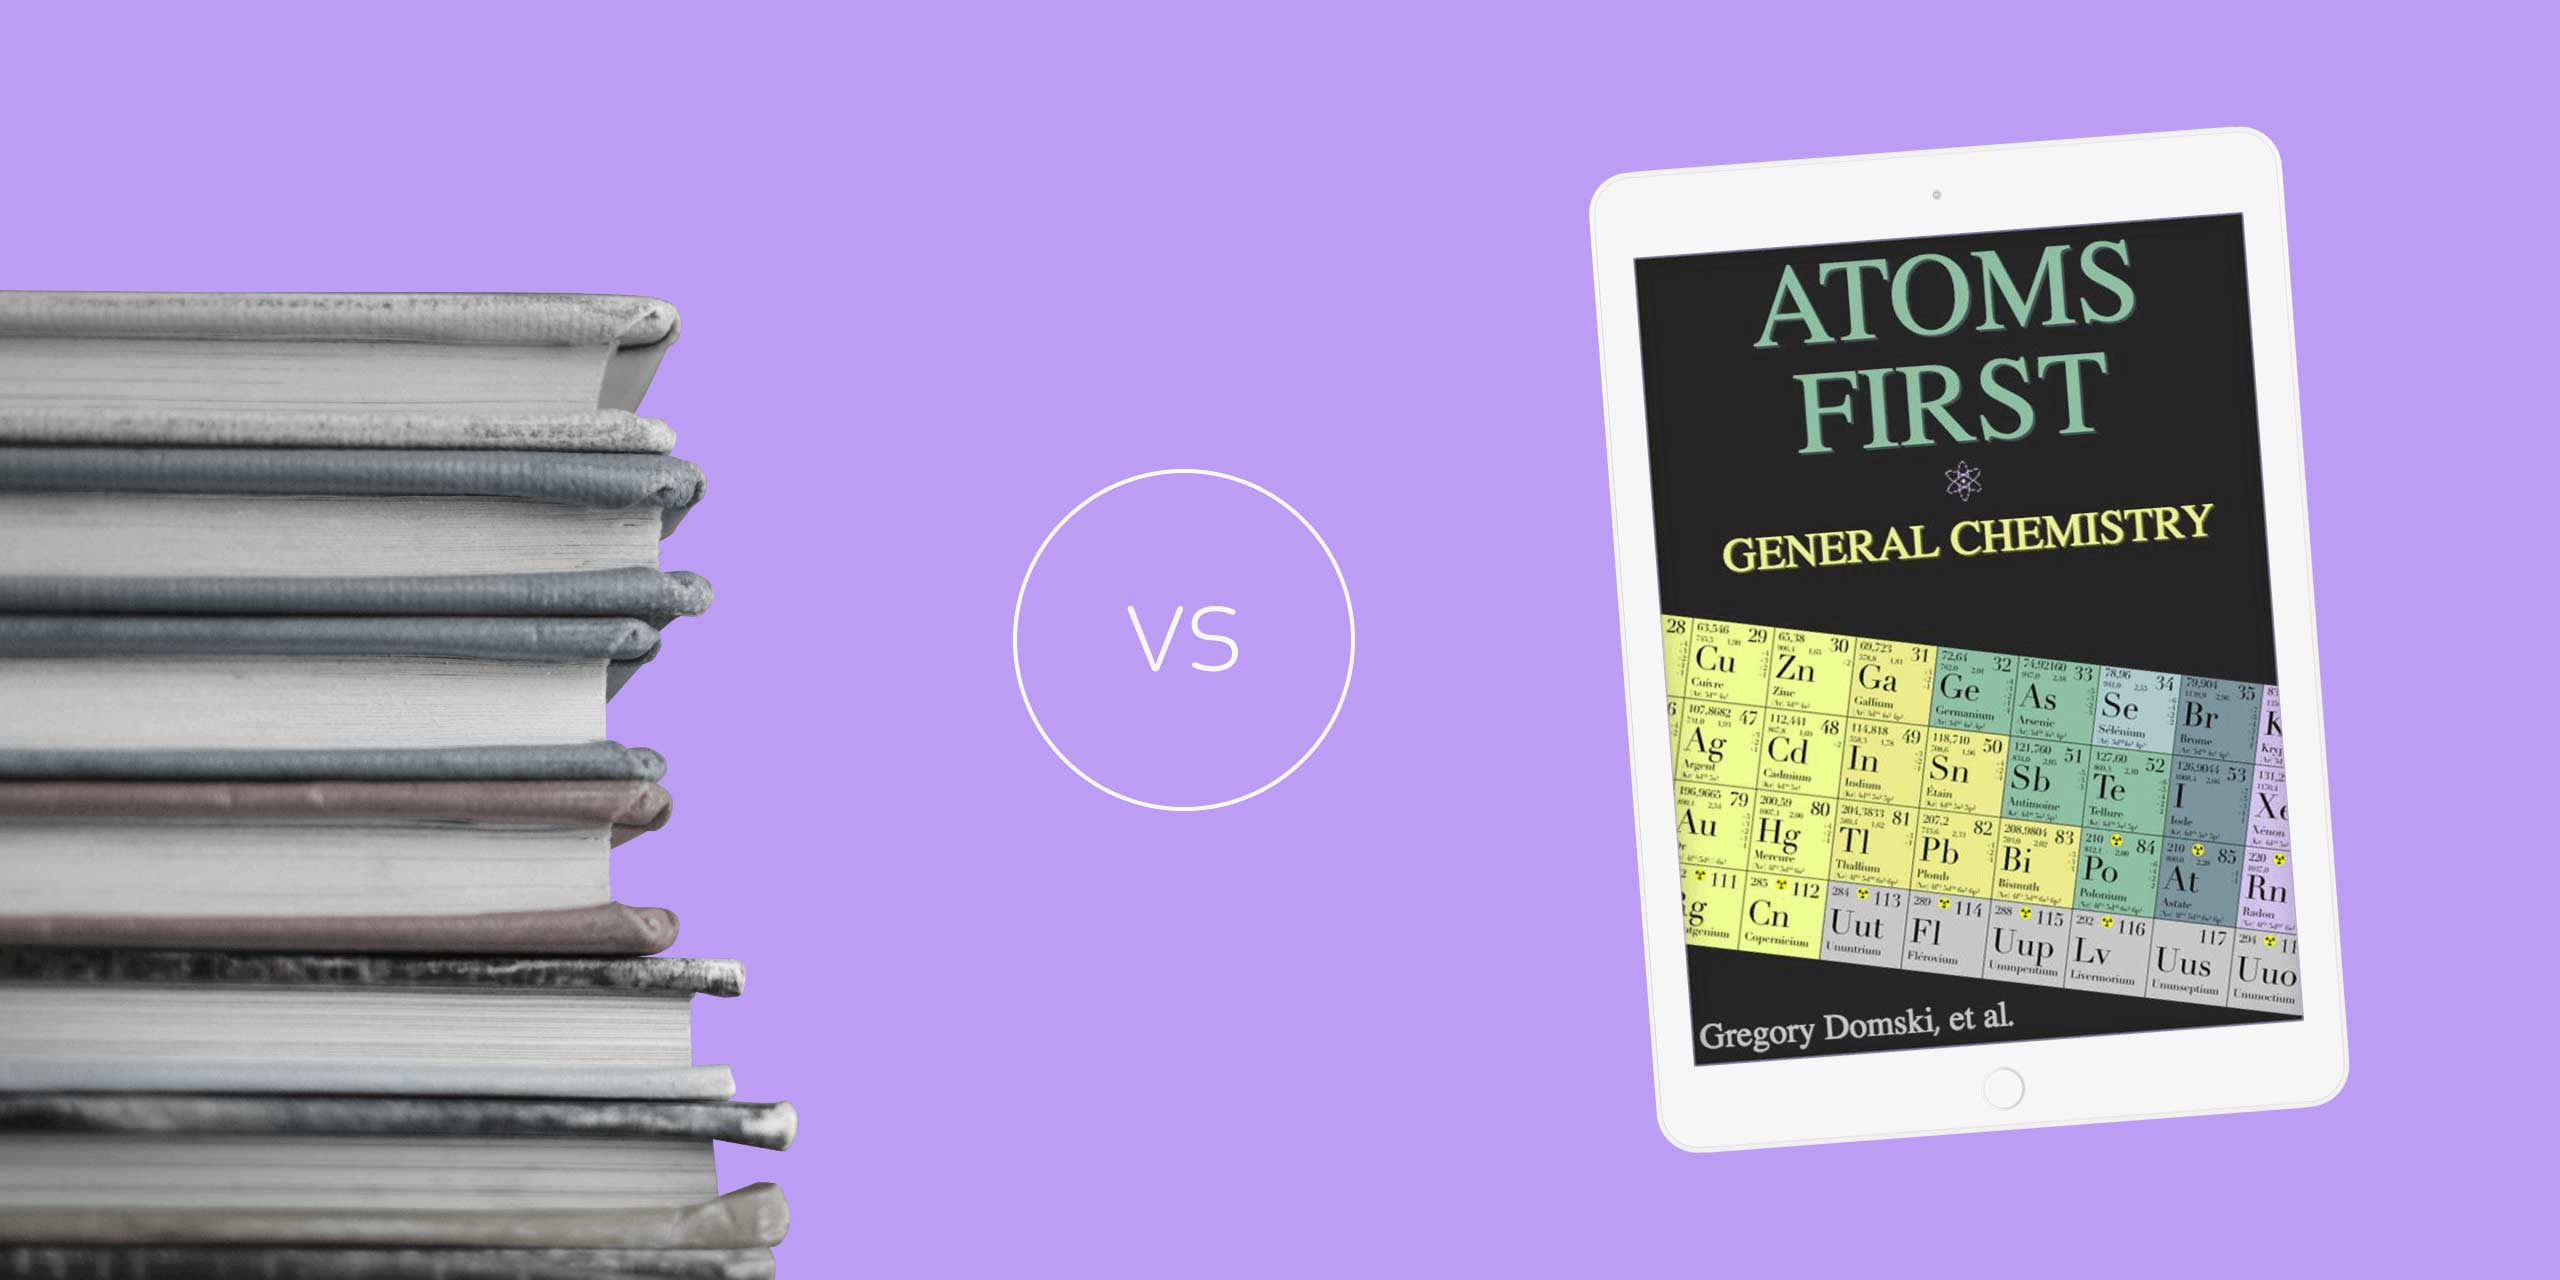 Atoms First General Chemistry Textbooks: Which Is The Best? | Top Hat